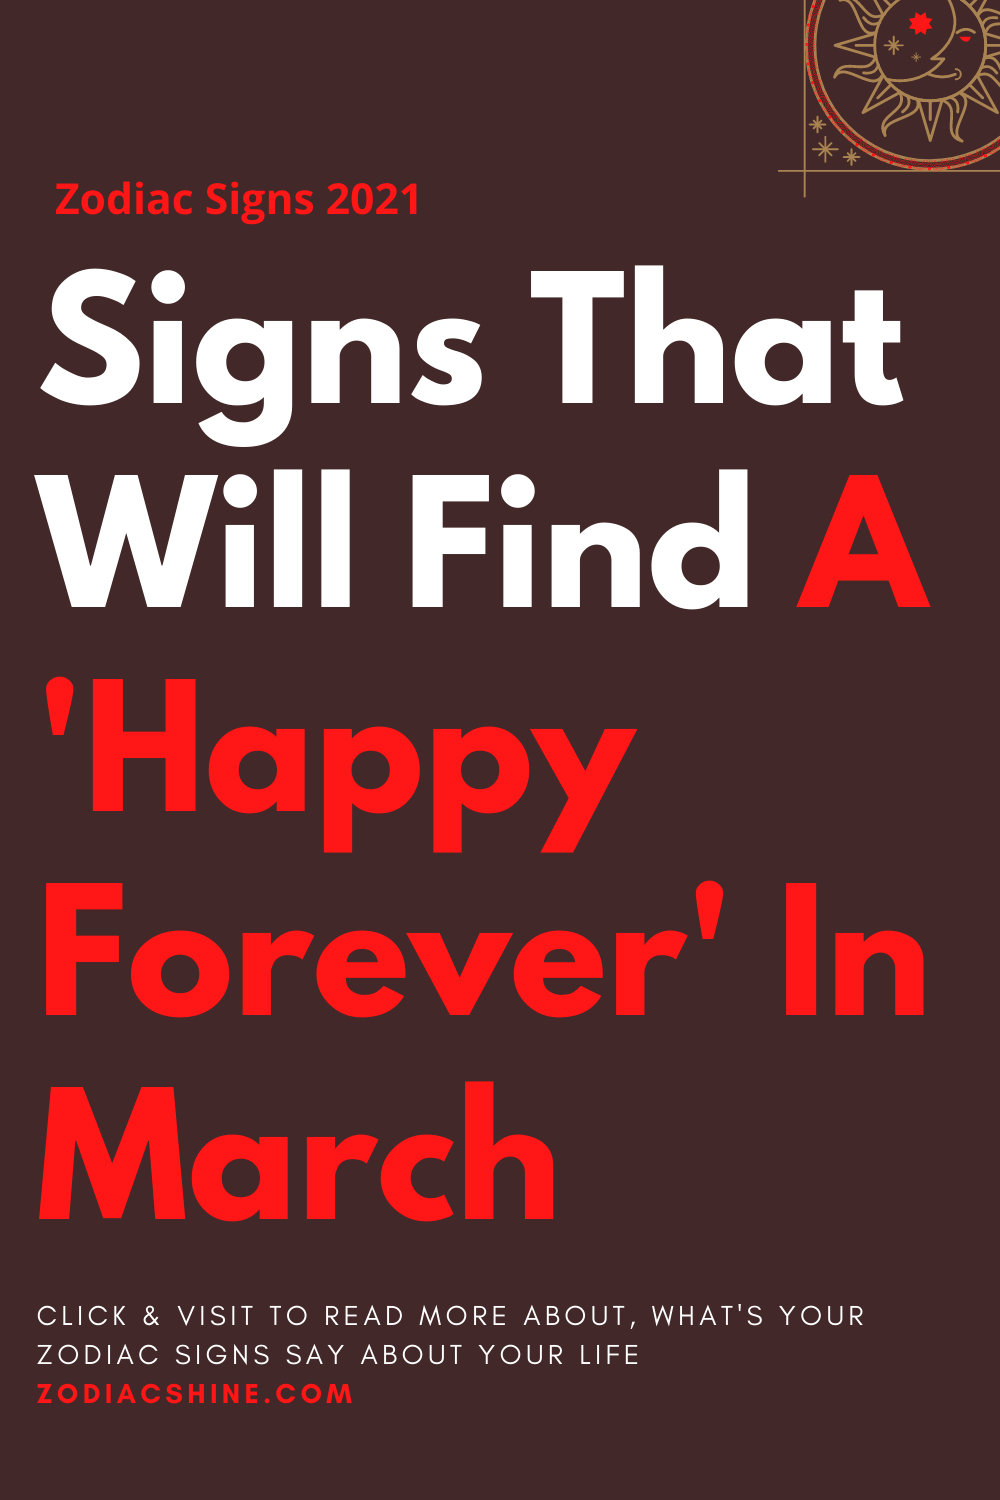 Signs That Will Find A 'Happy Forever' In March